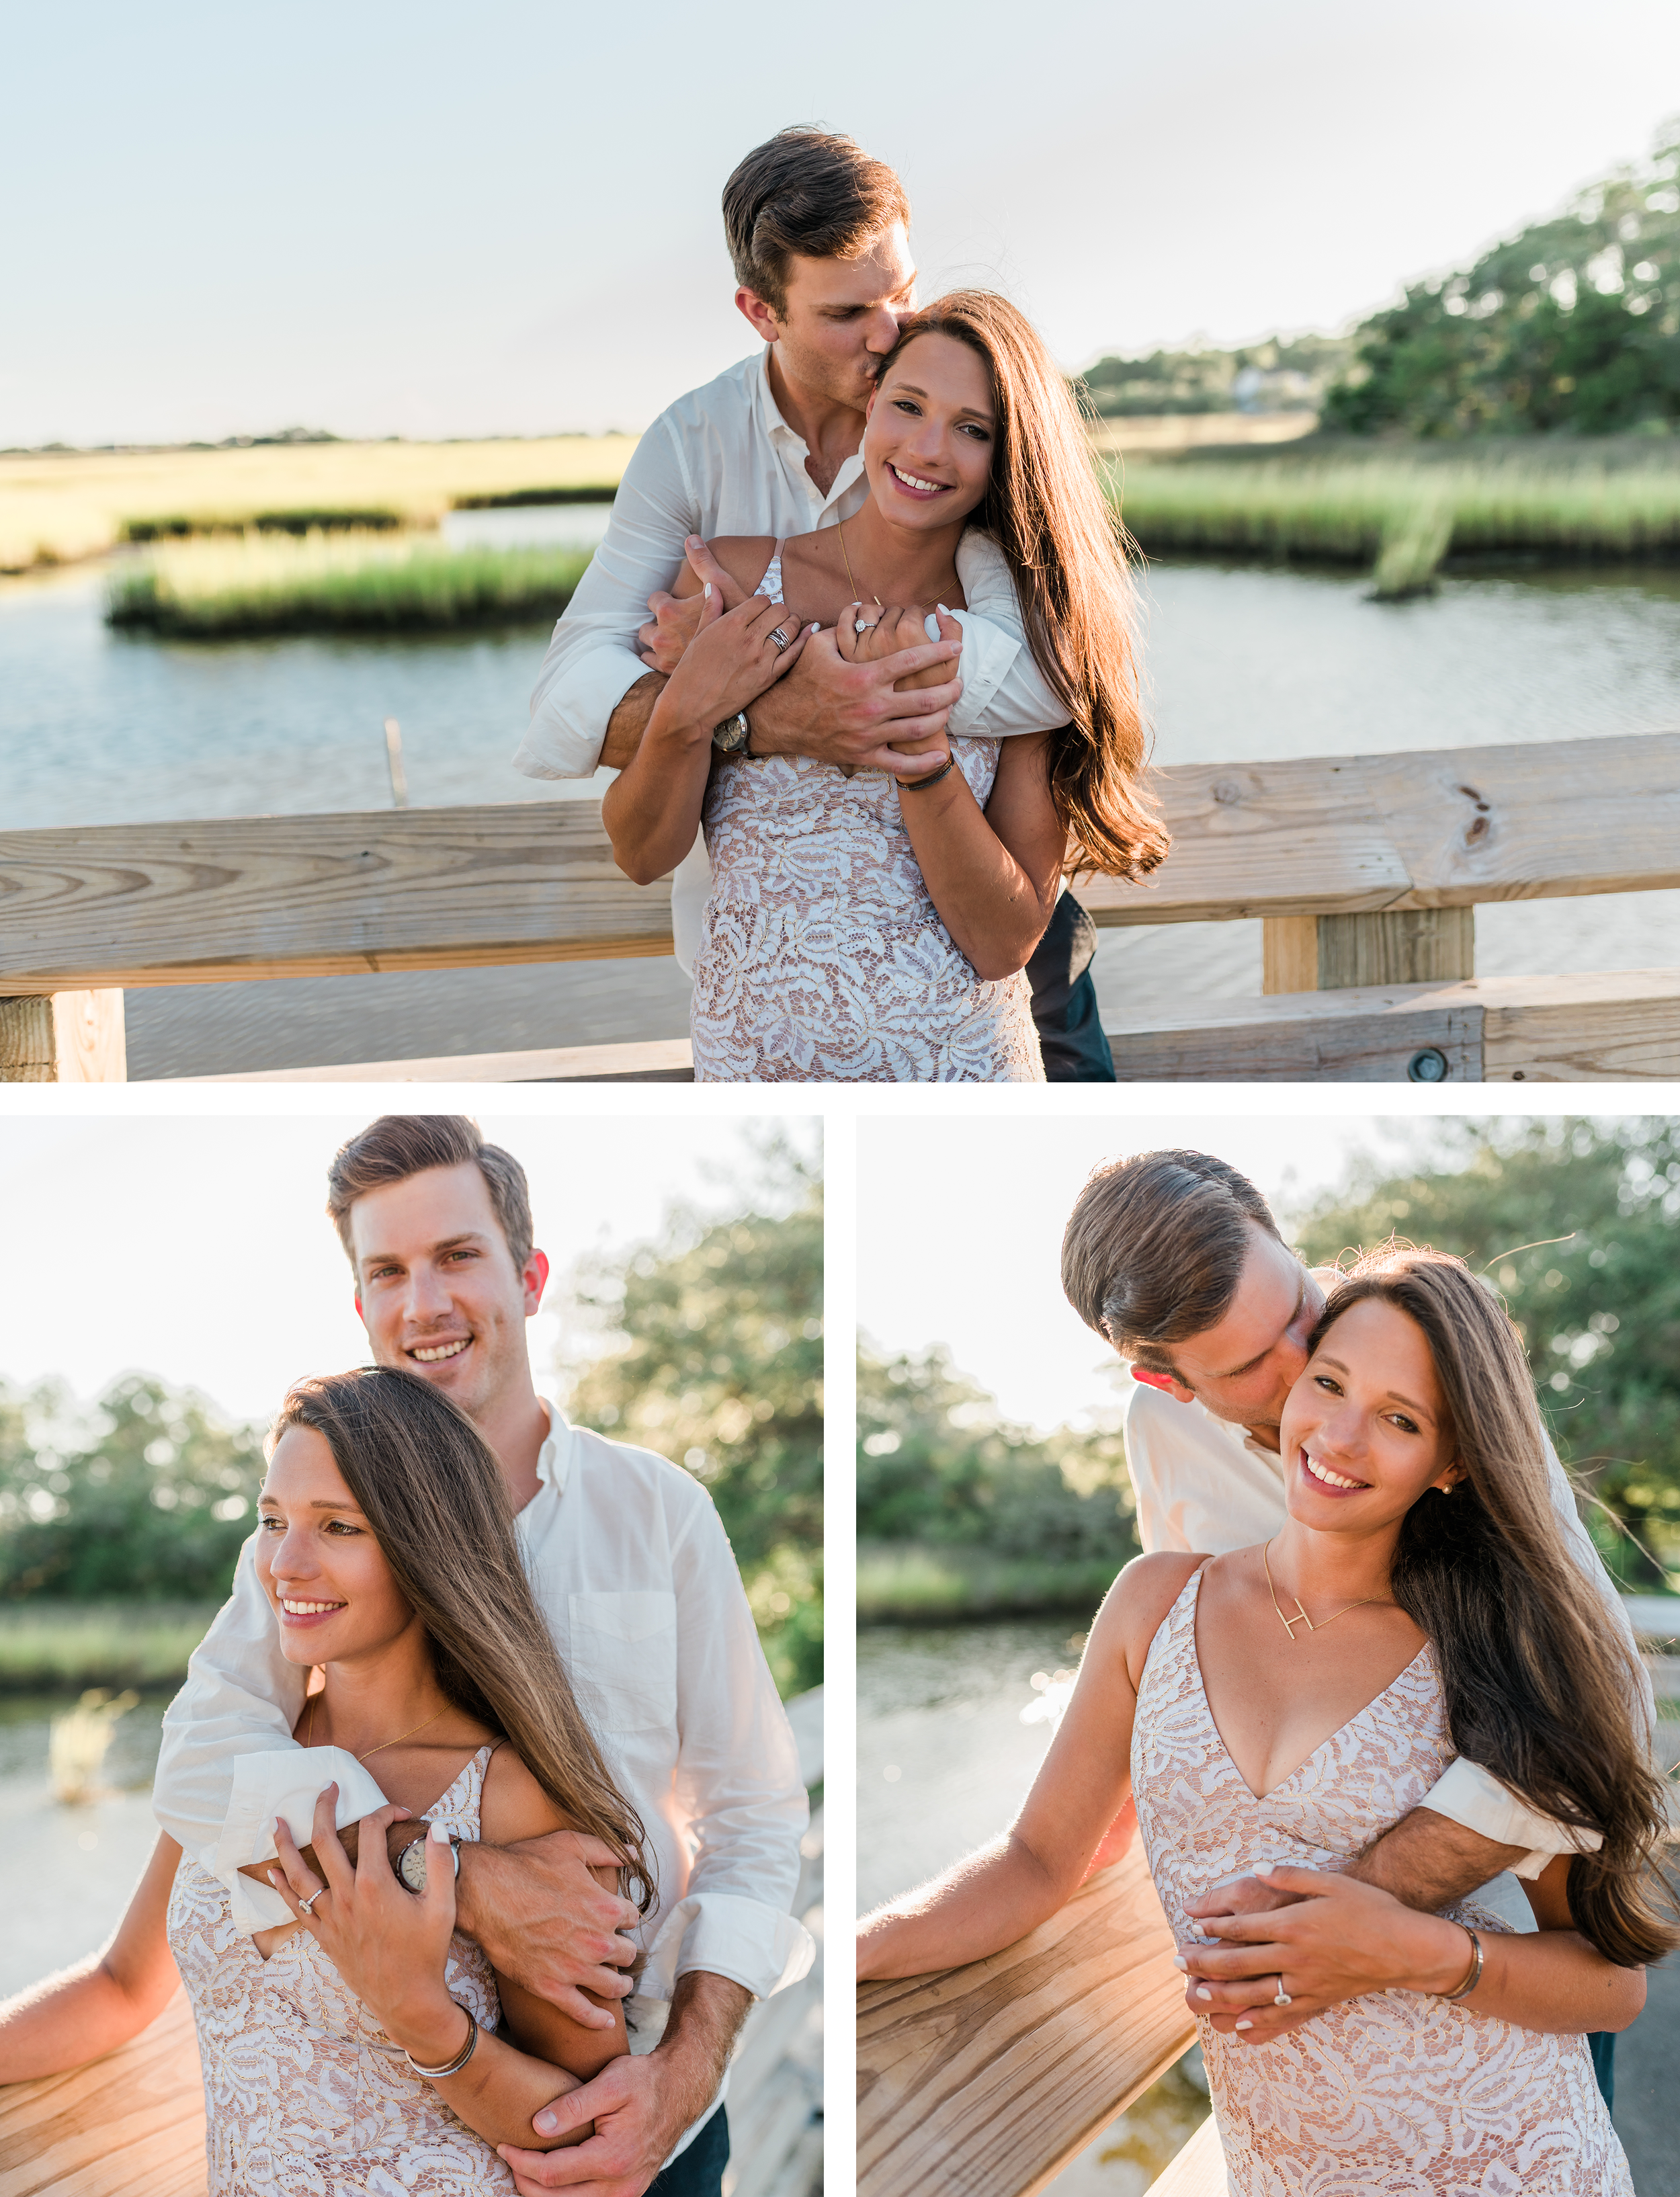 Evan Haley Engagement_Pawleys Island SC_Kristen Paige Photography_Gallery 4.png